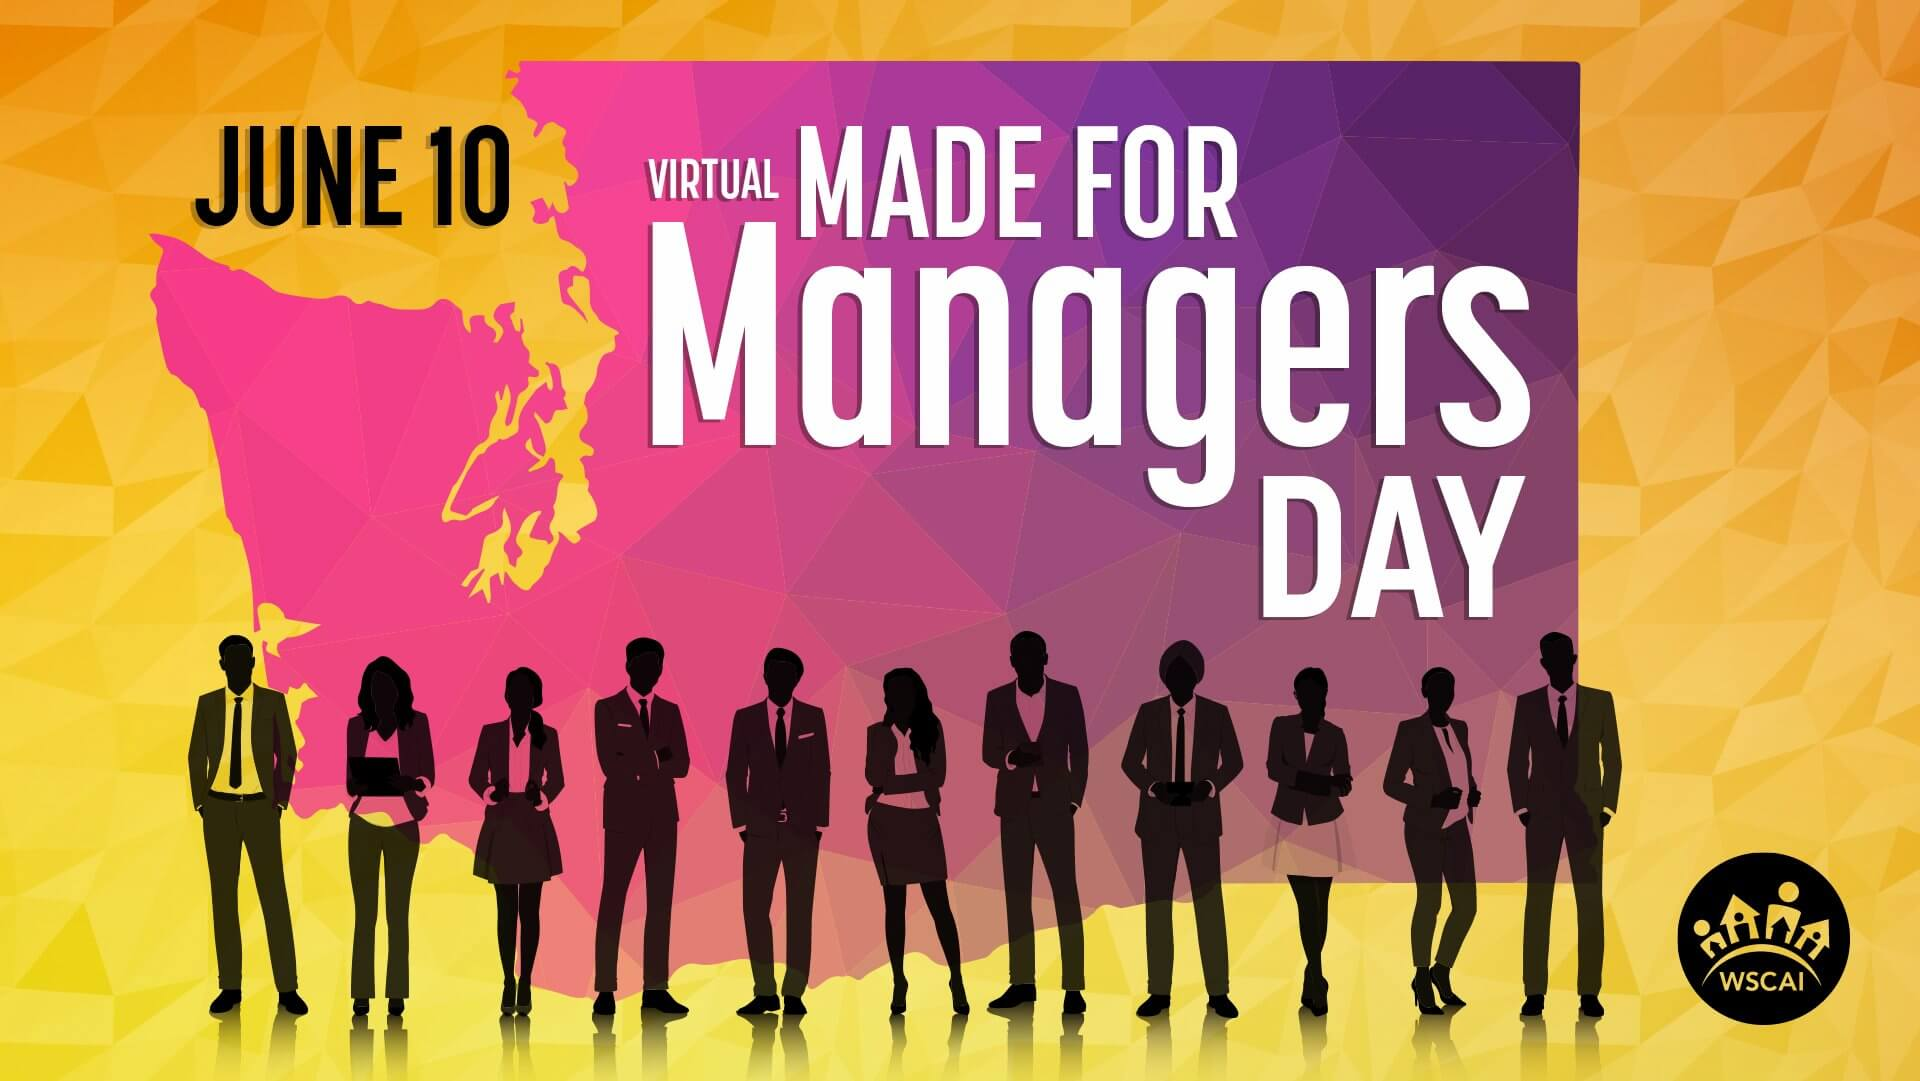 Virtual Made For Managers Day - June 10, 2021 - mobile image